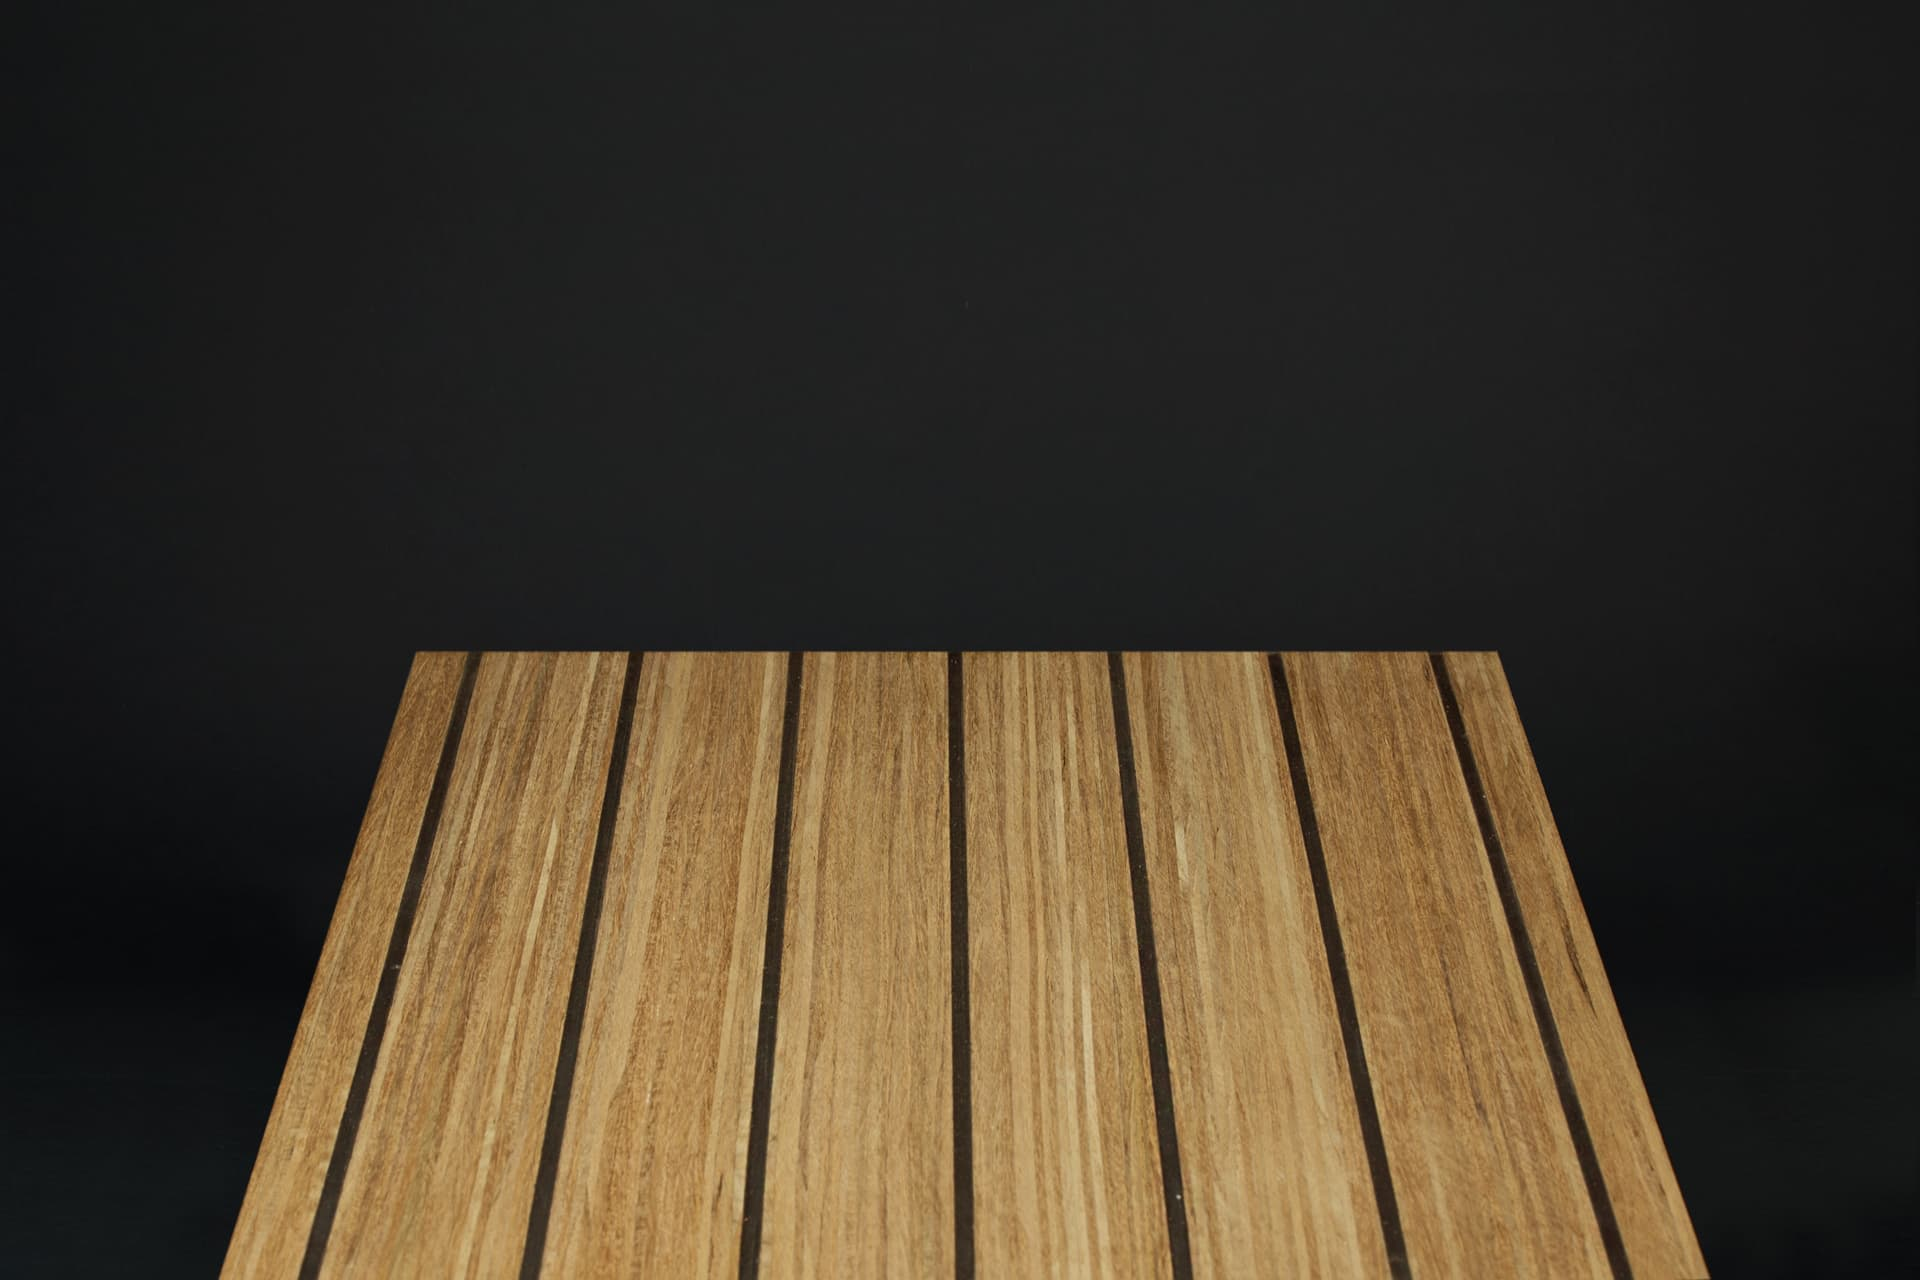 Decking Panels Hero Decking Panels Decking Evoteak2 Nord Compensati Spa